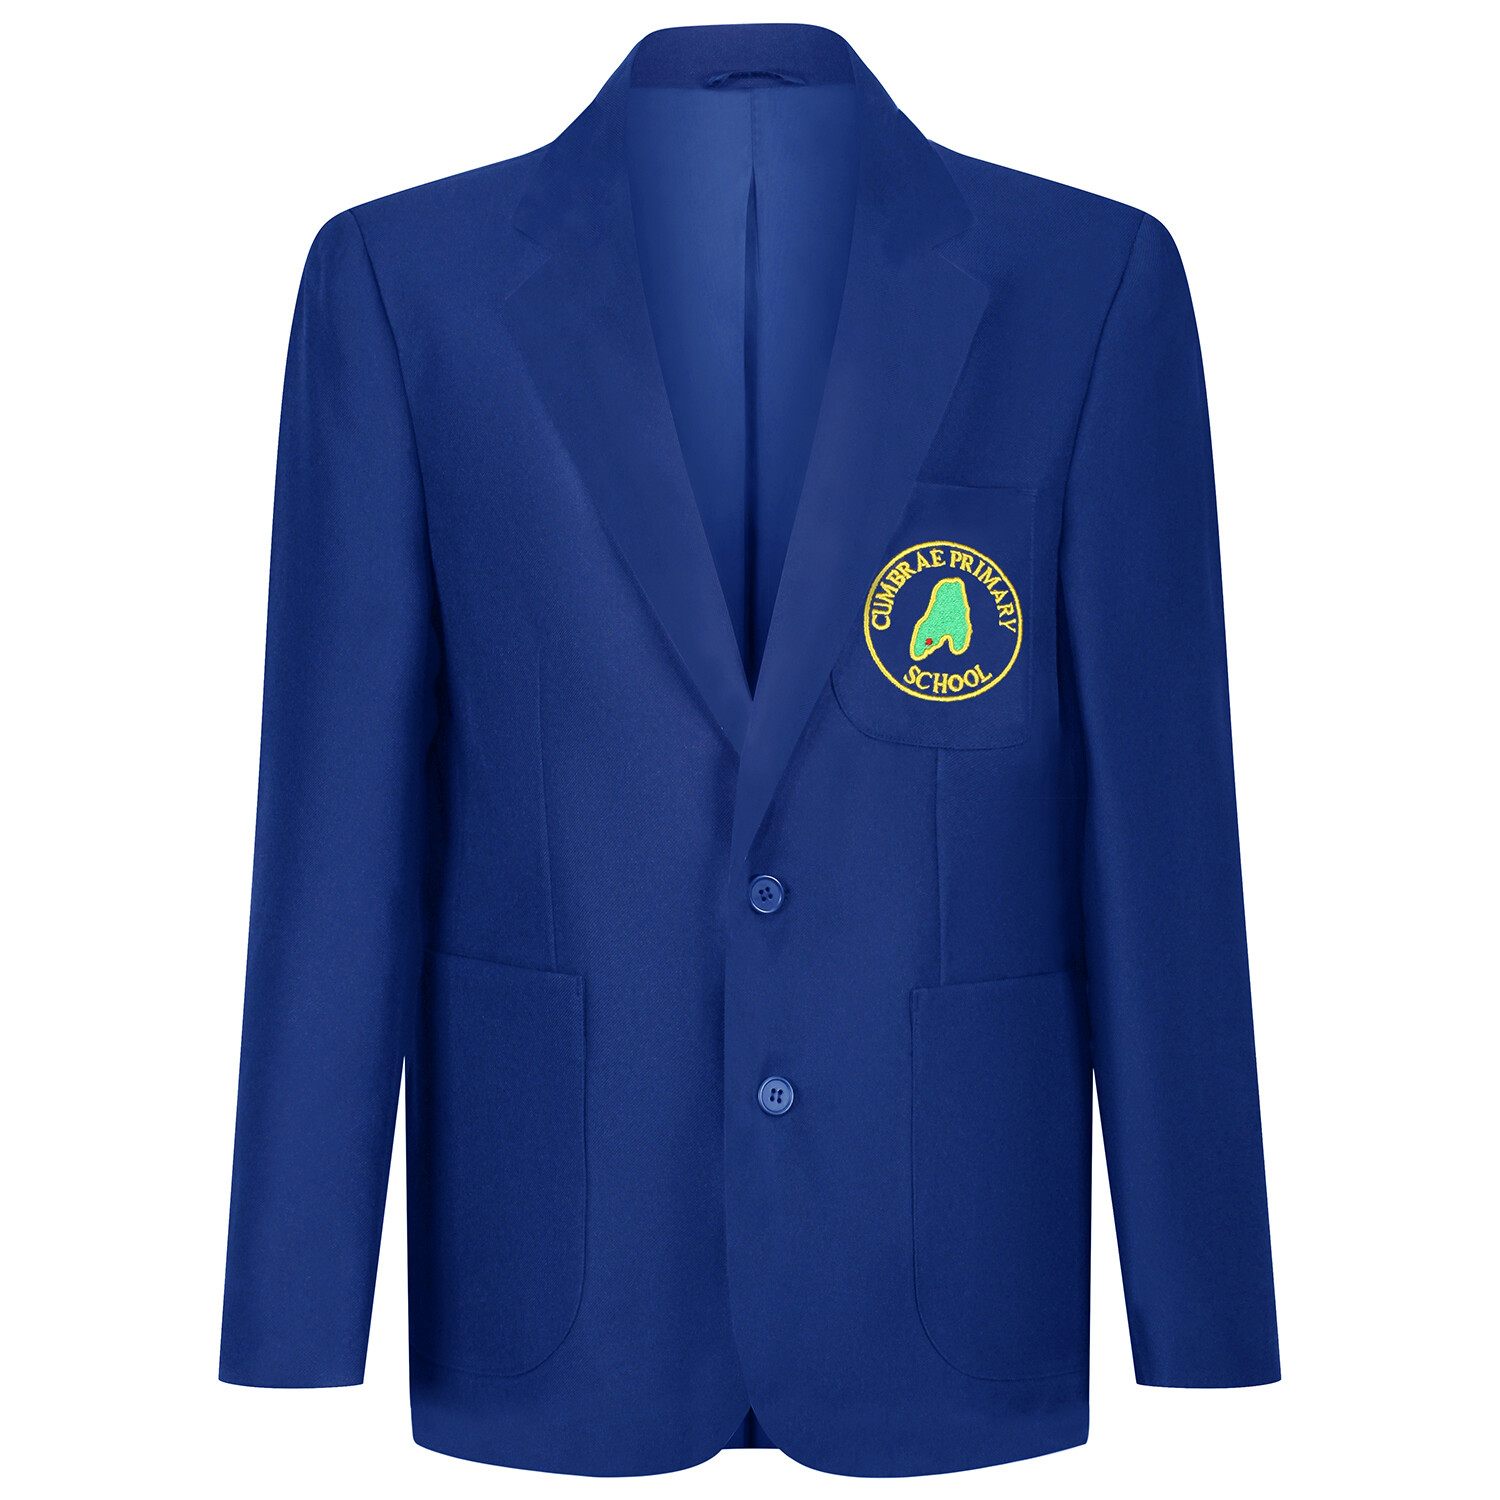 Cumbrae Primary School Blazer (Made-to-Order)